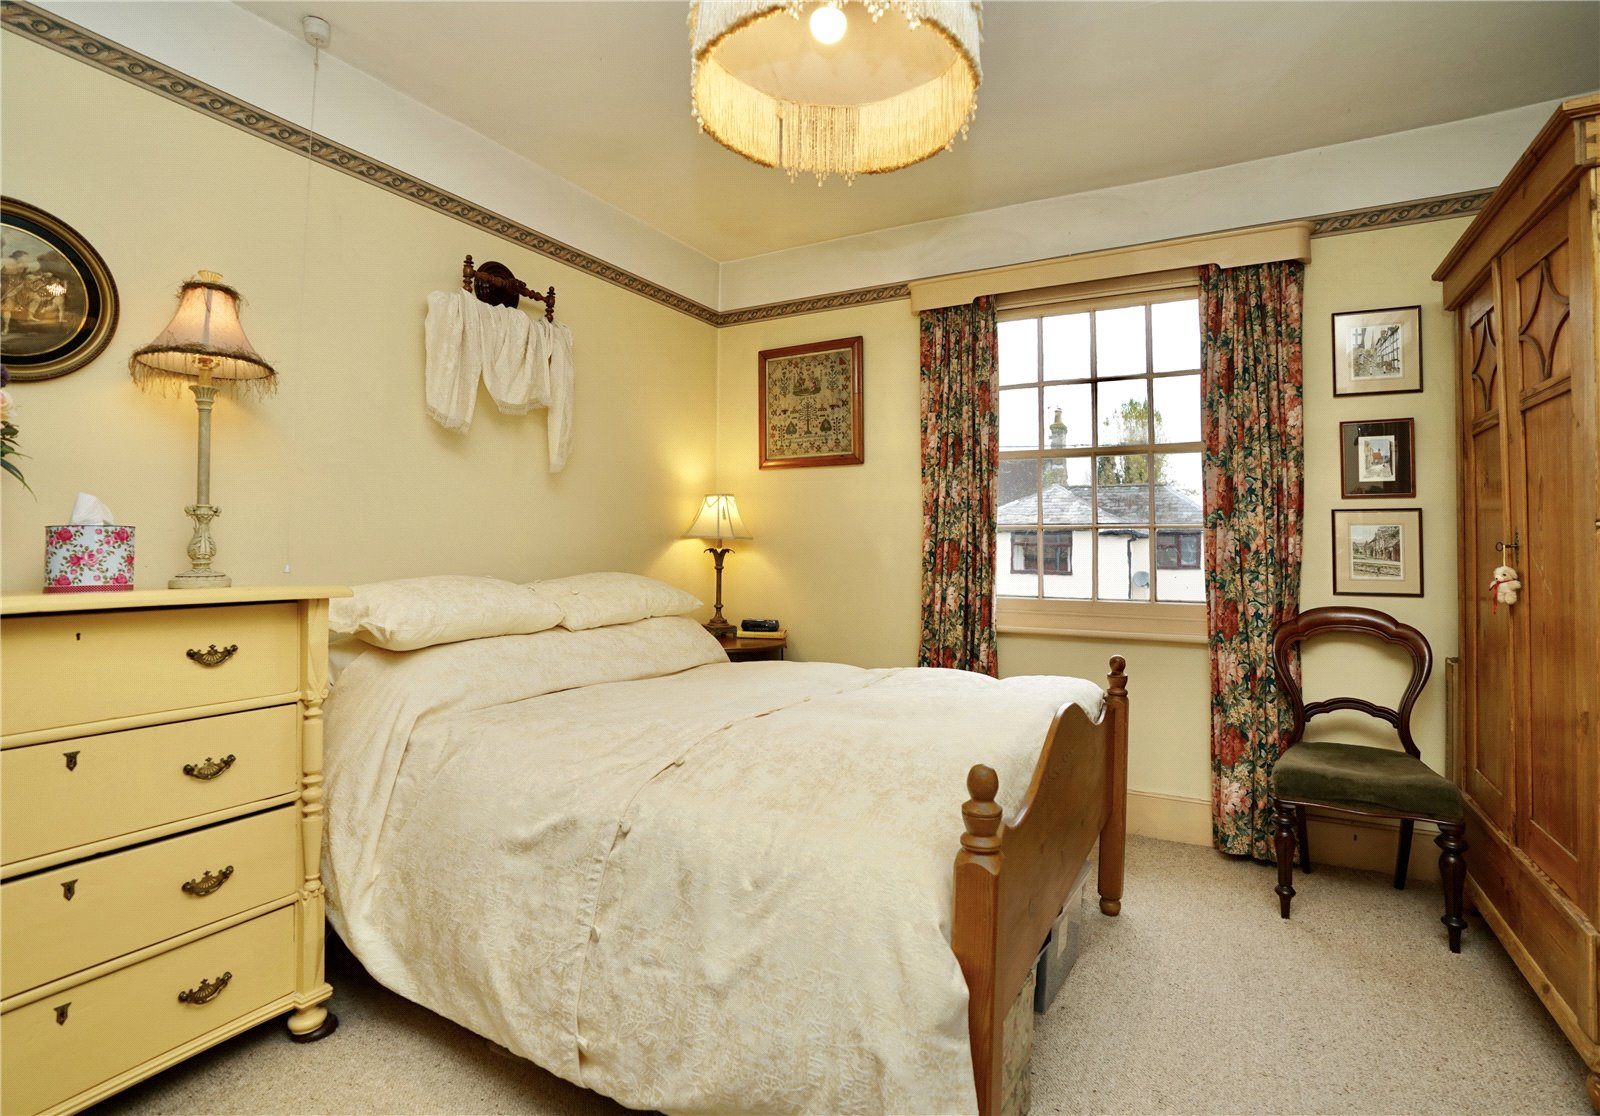 4 bed house for sale in Great Staughton 15